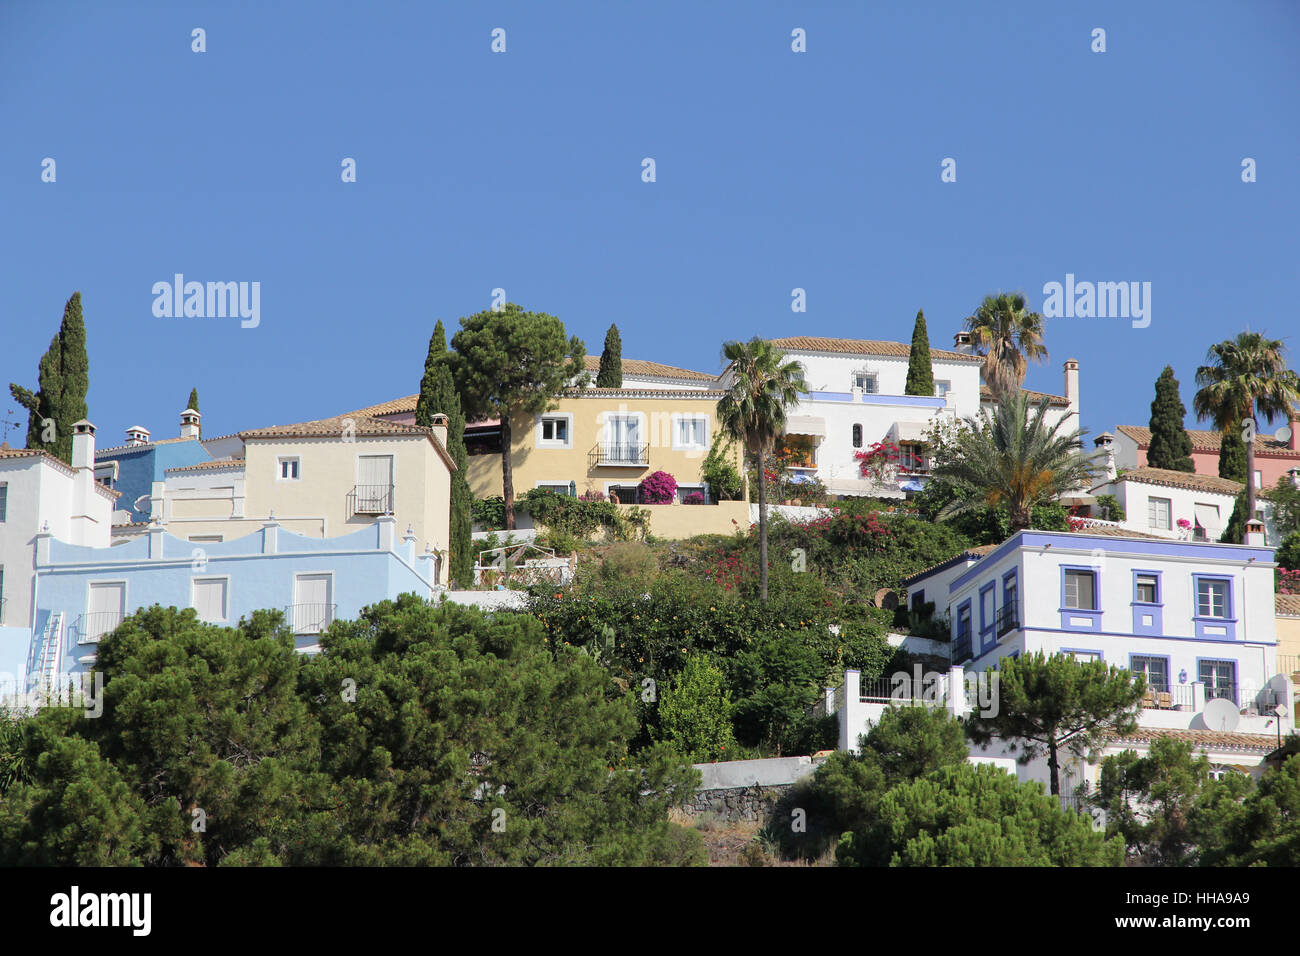 spain, andalusia, colony, community, village, market town, houses, hill, - Stock Image